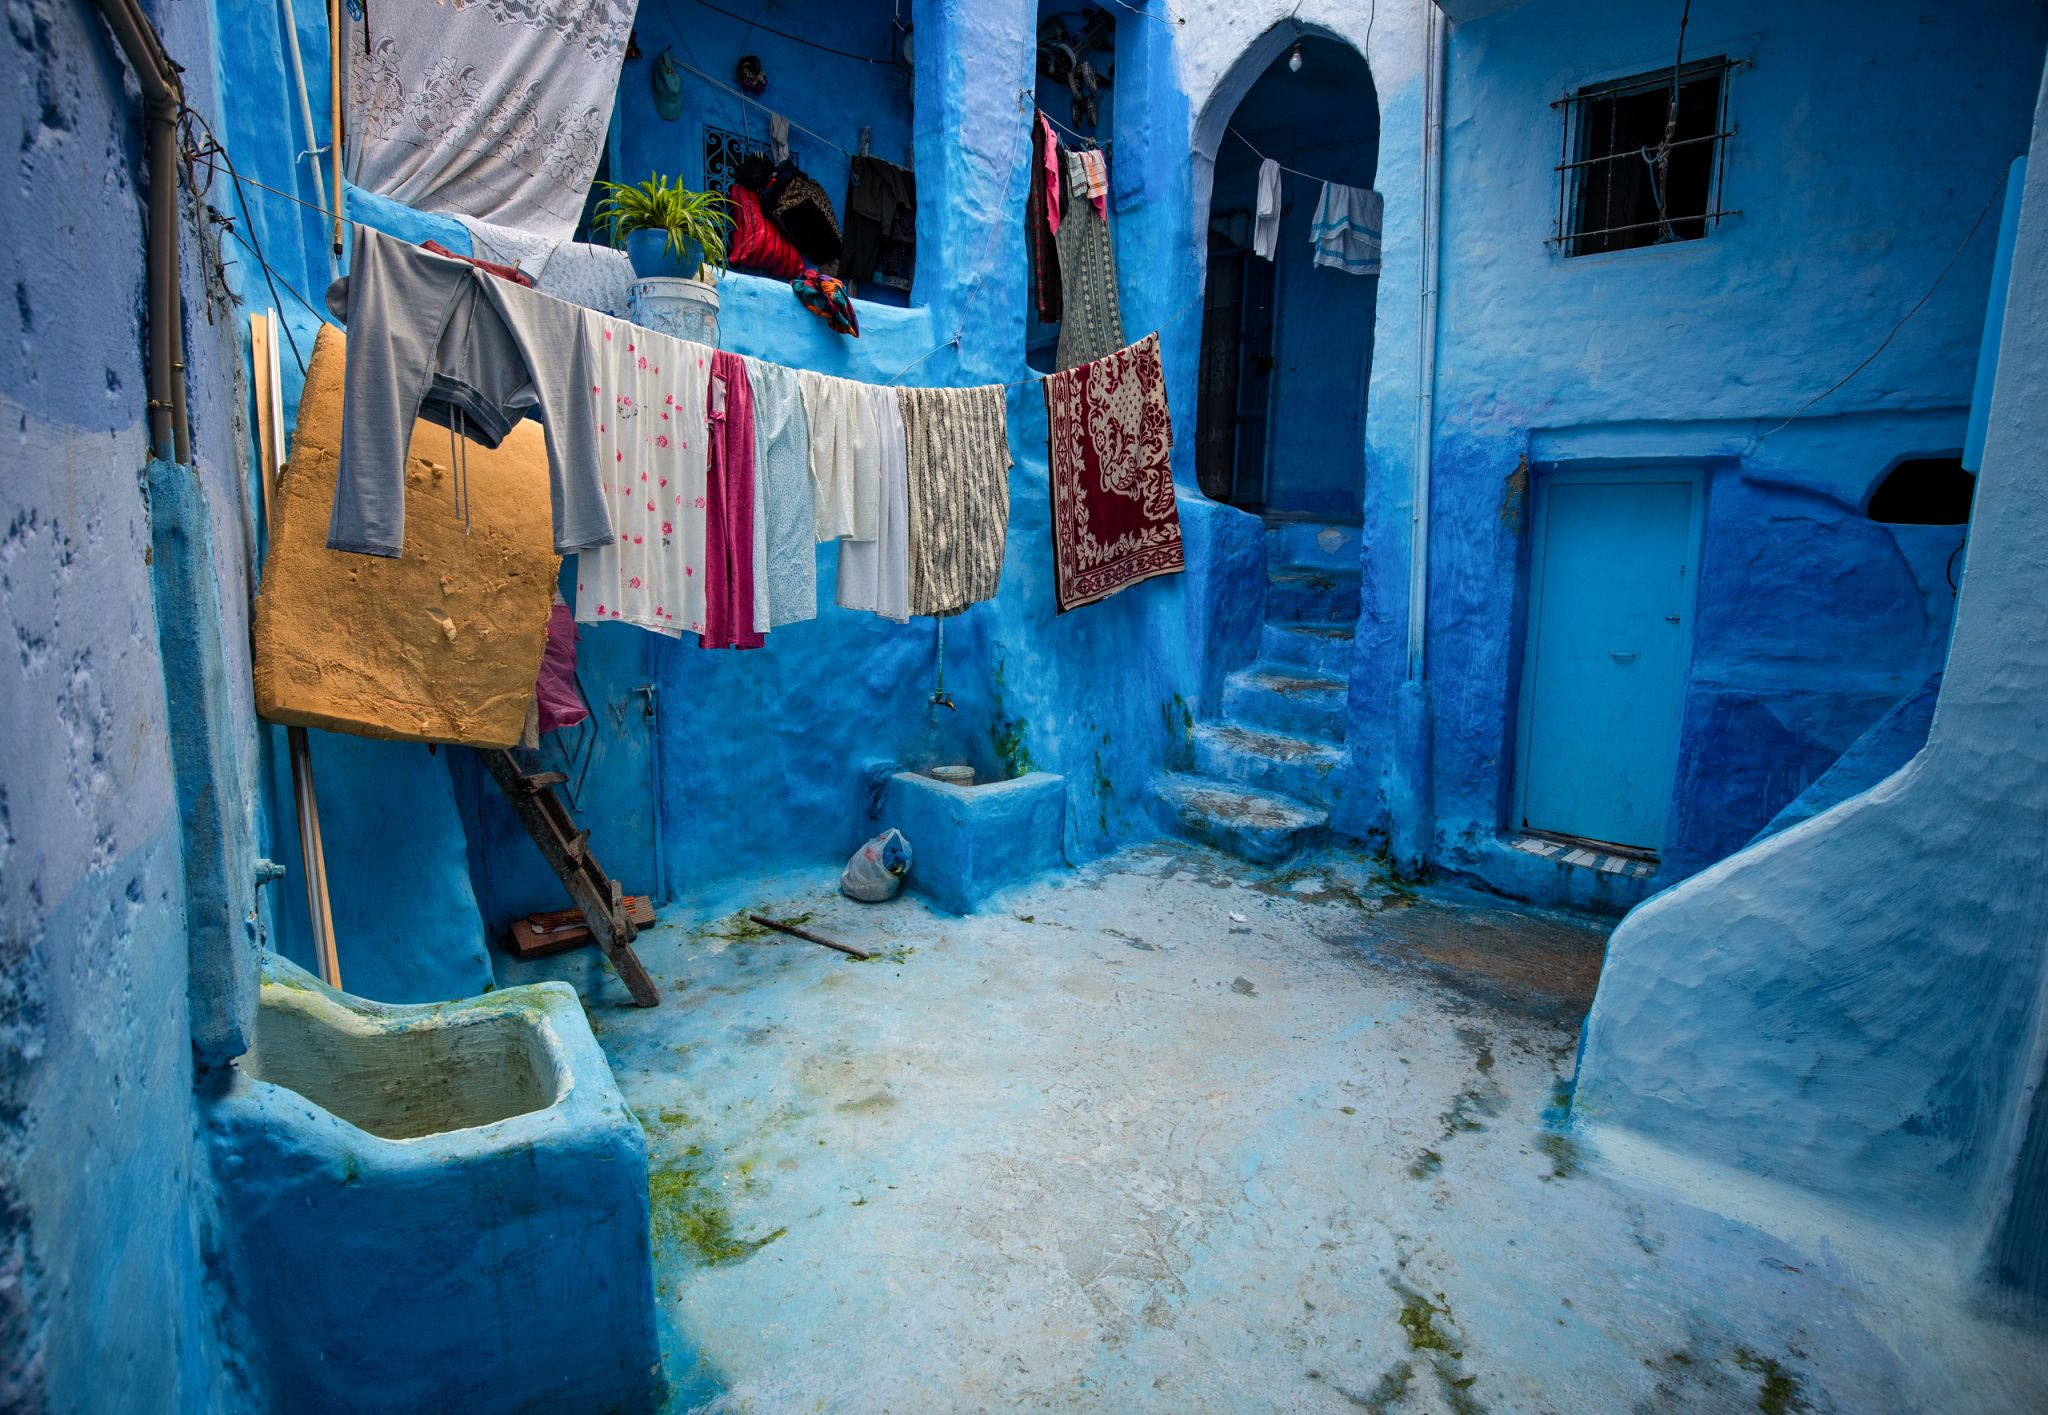 In the streets of Chefchaouen, Morocco